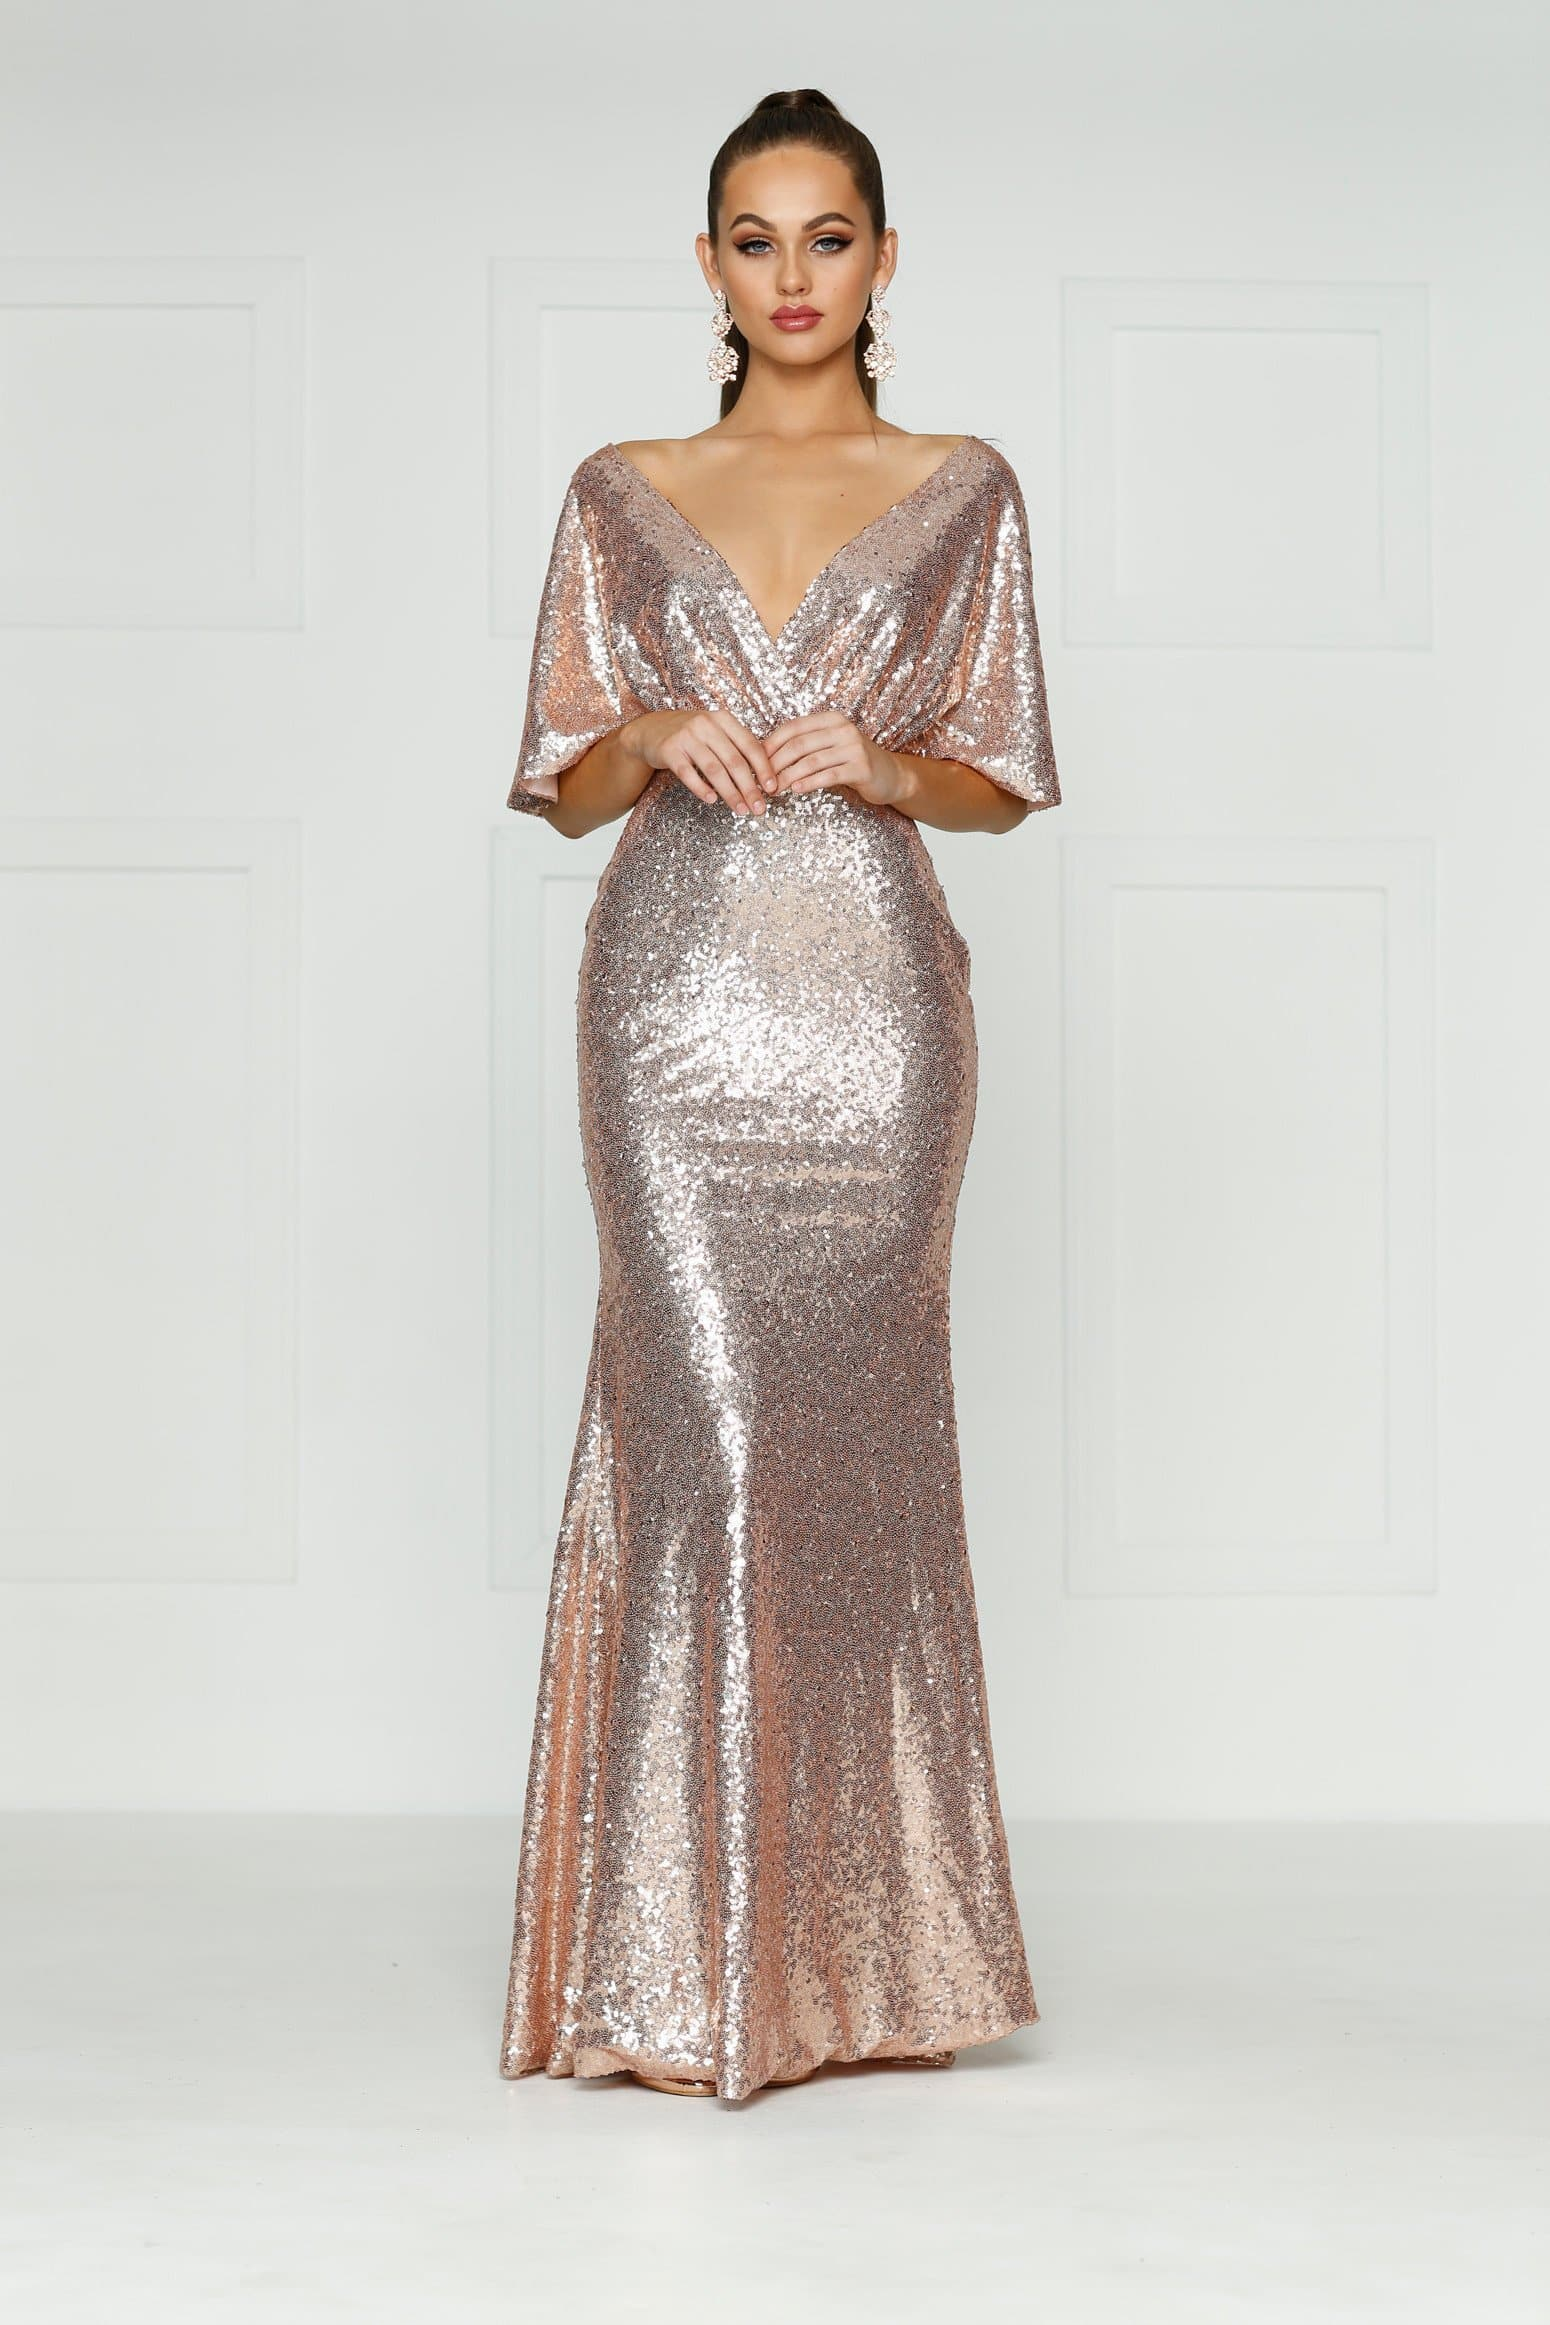 A&N Lily - Rose Gold Sequins Dress with Cape Sleeves and Mermaid Train